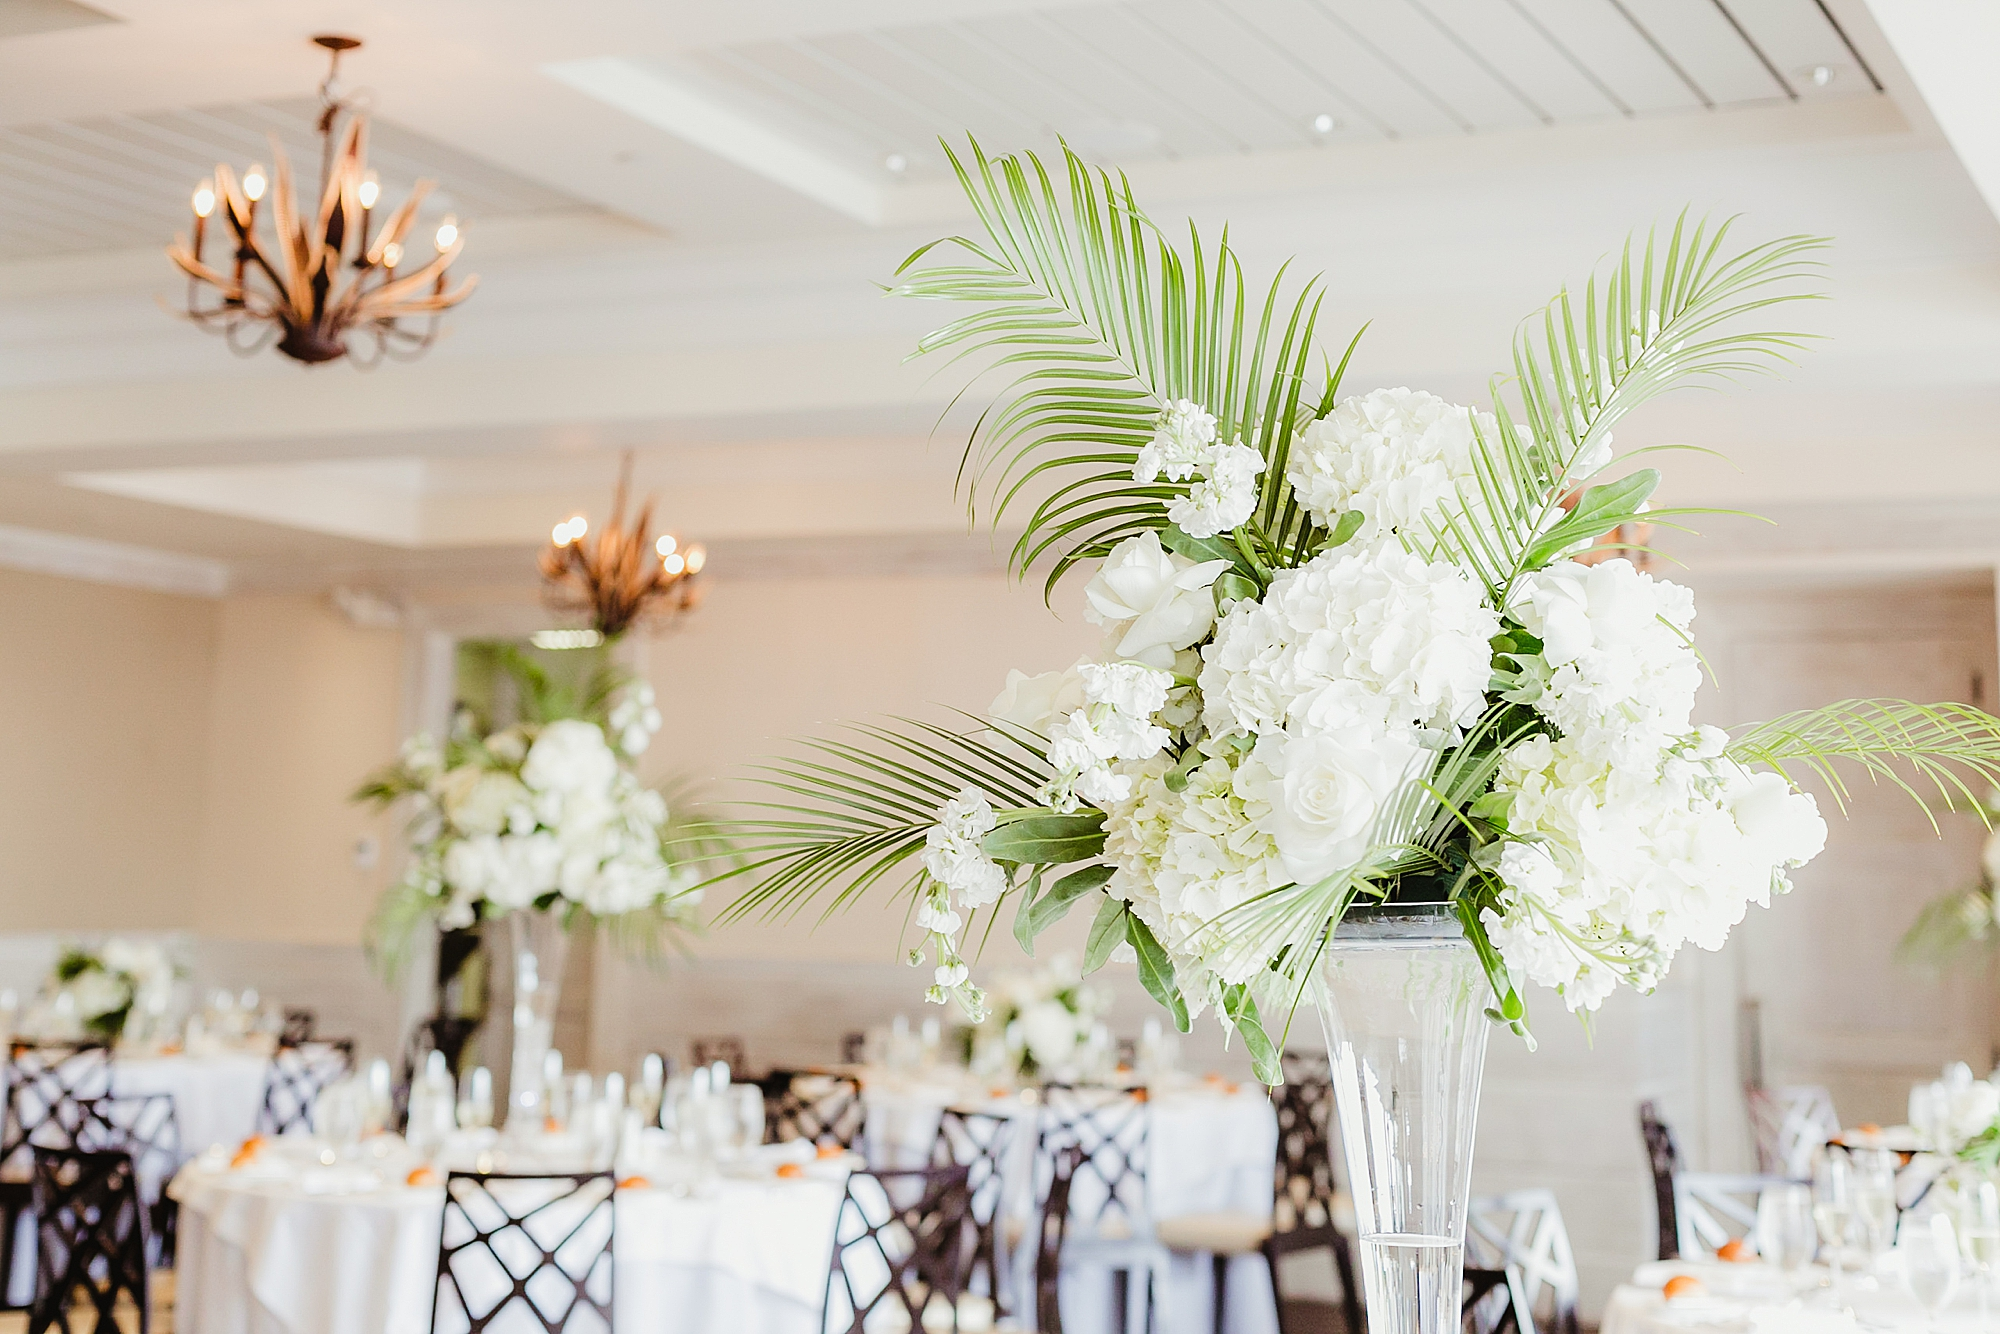 Candid and Stylish South Jersey Wedding Photography by Magdalena Studios 0061